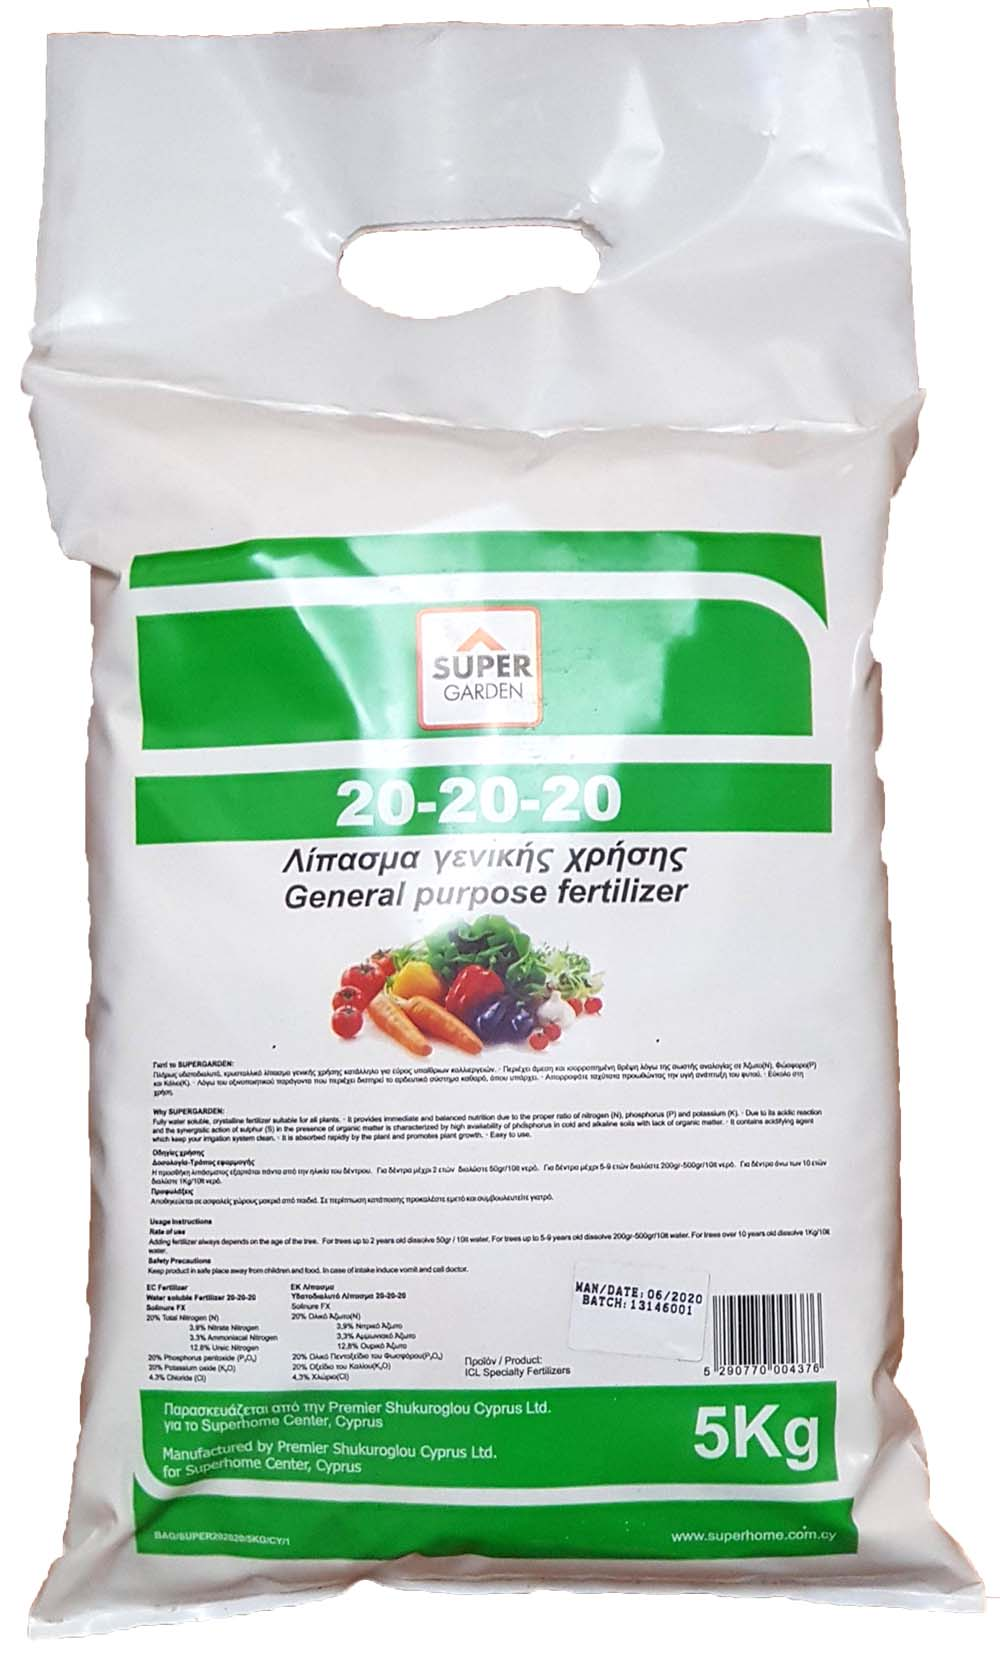 SHC FERTILIZER 20-20-20 5KG